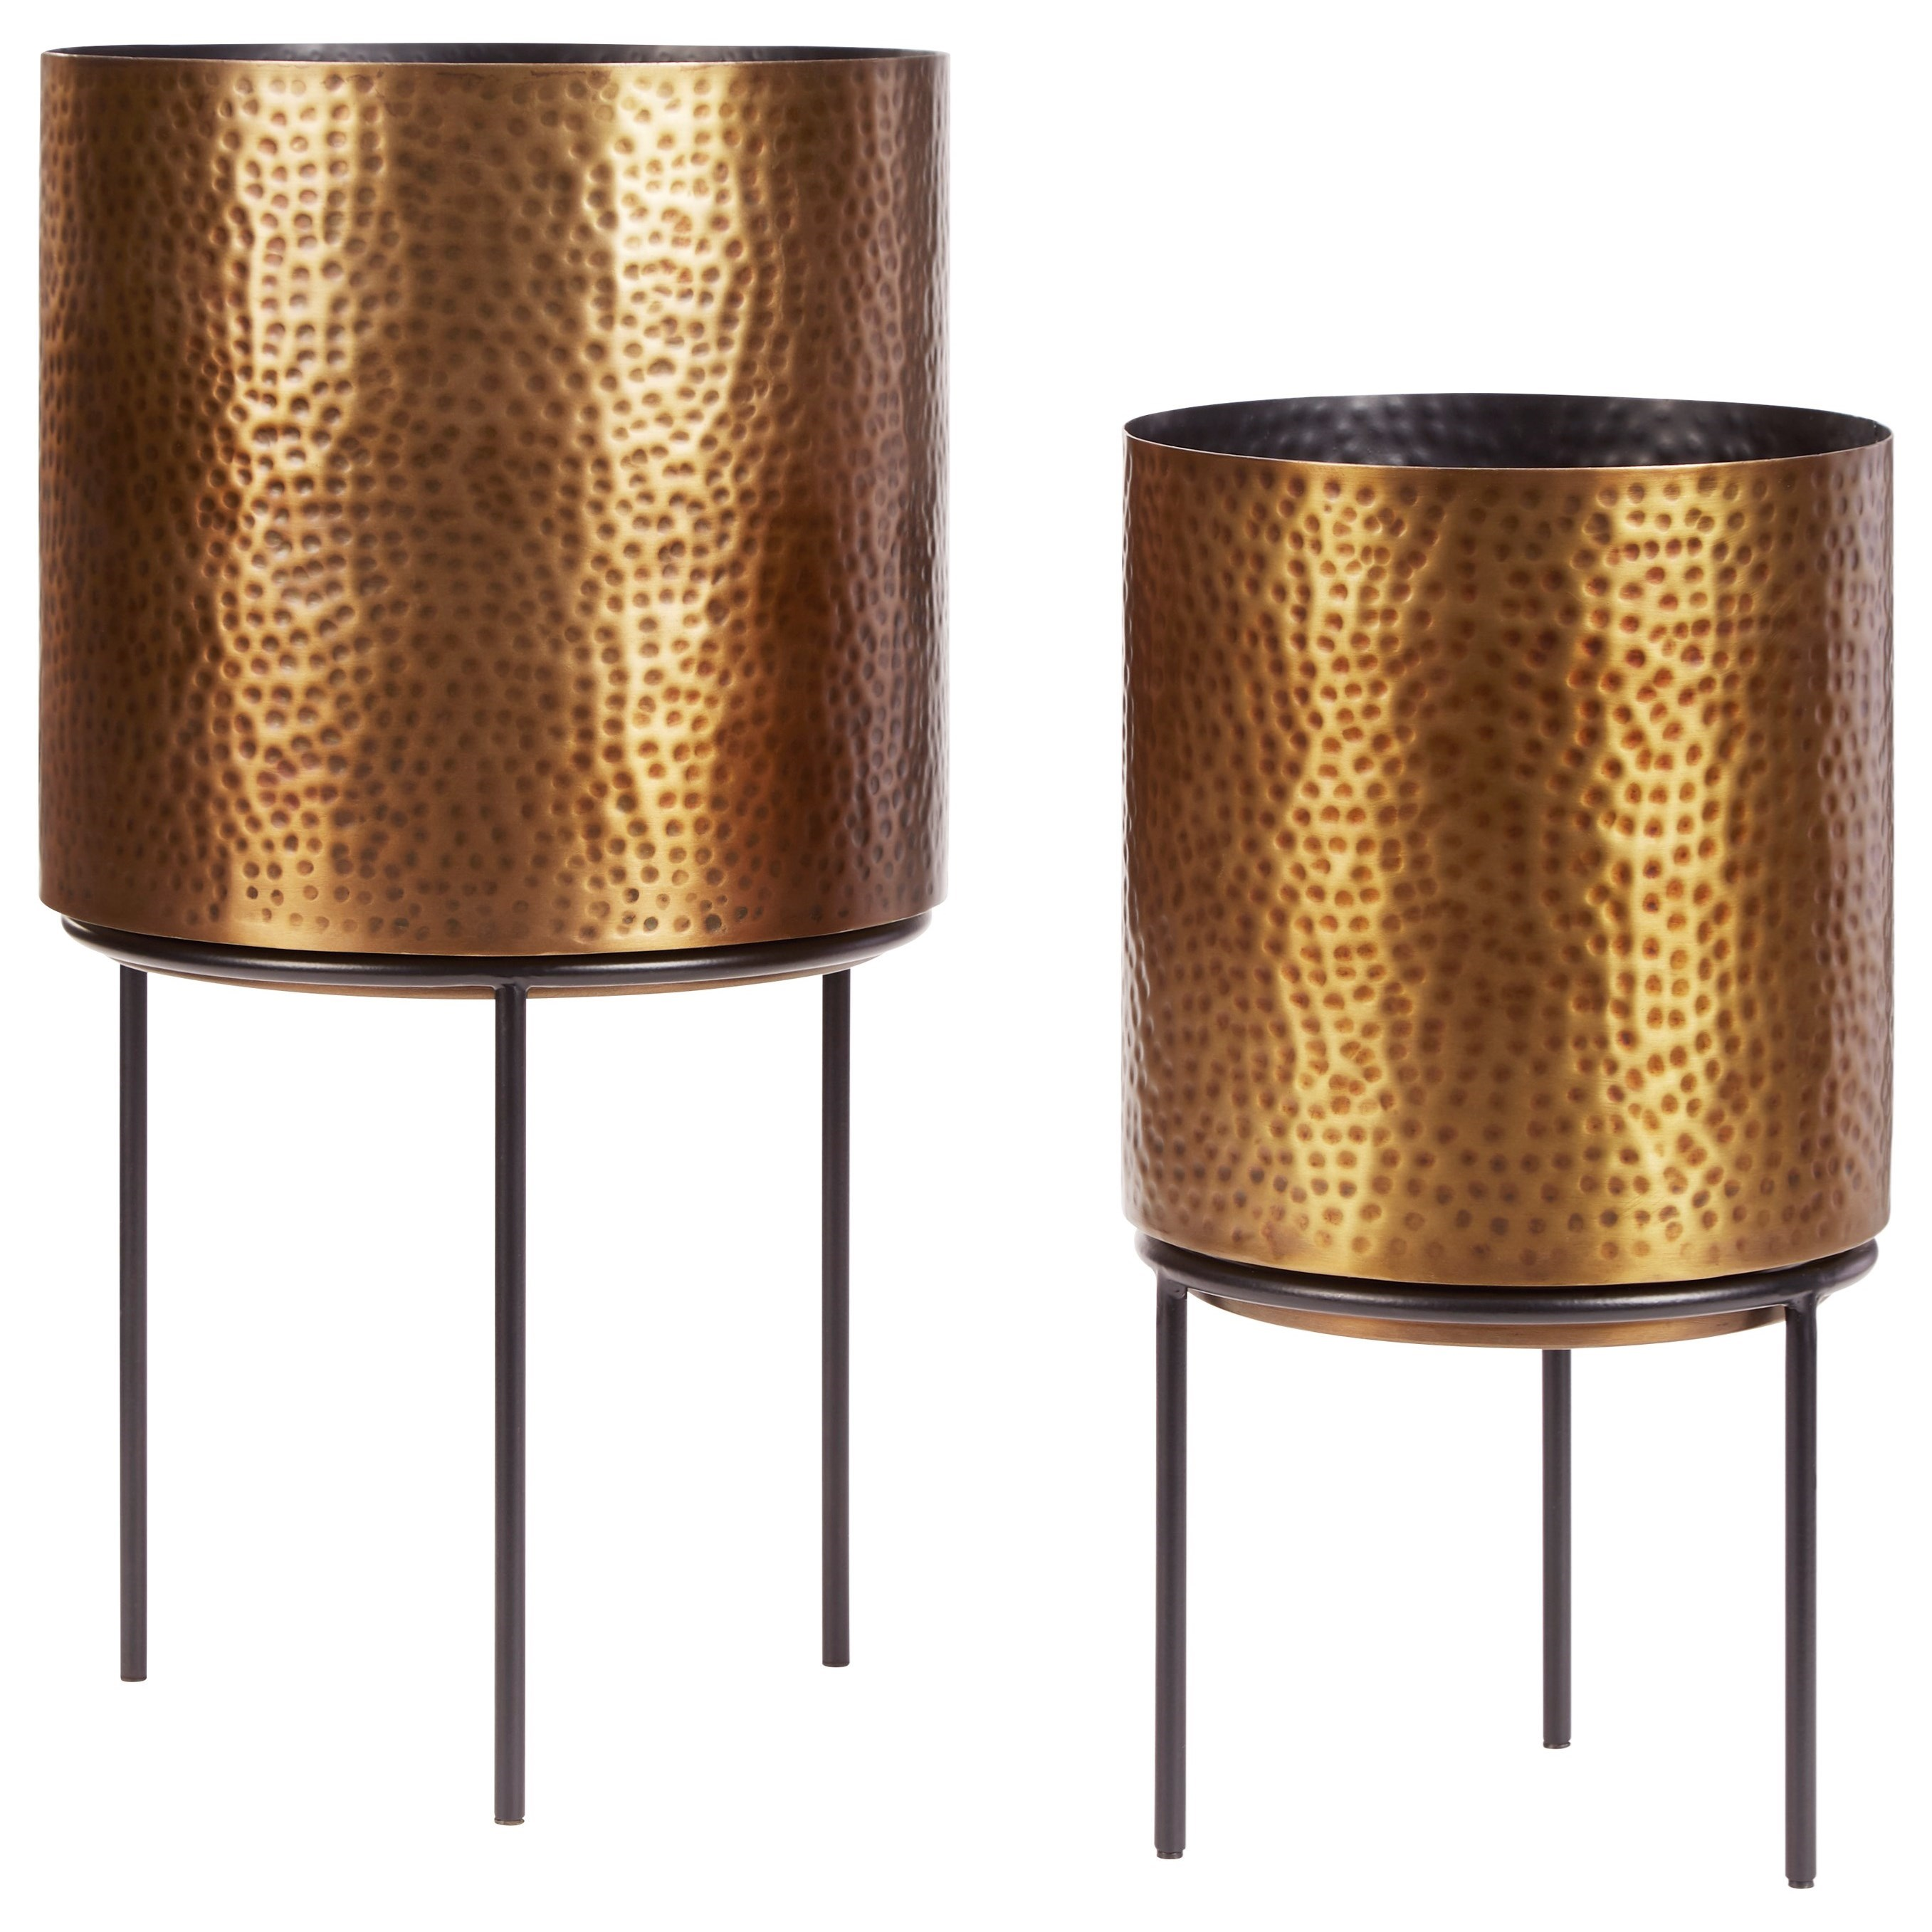 Accents Donisha Antique Brass Finish Planter Set by Signature Design by Ashley at Catalog Outlet